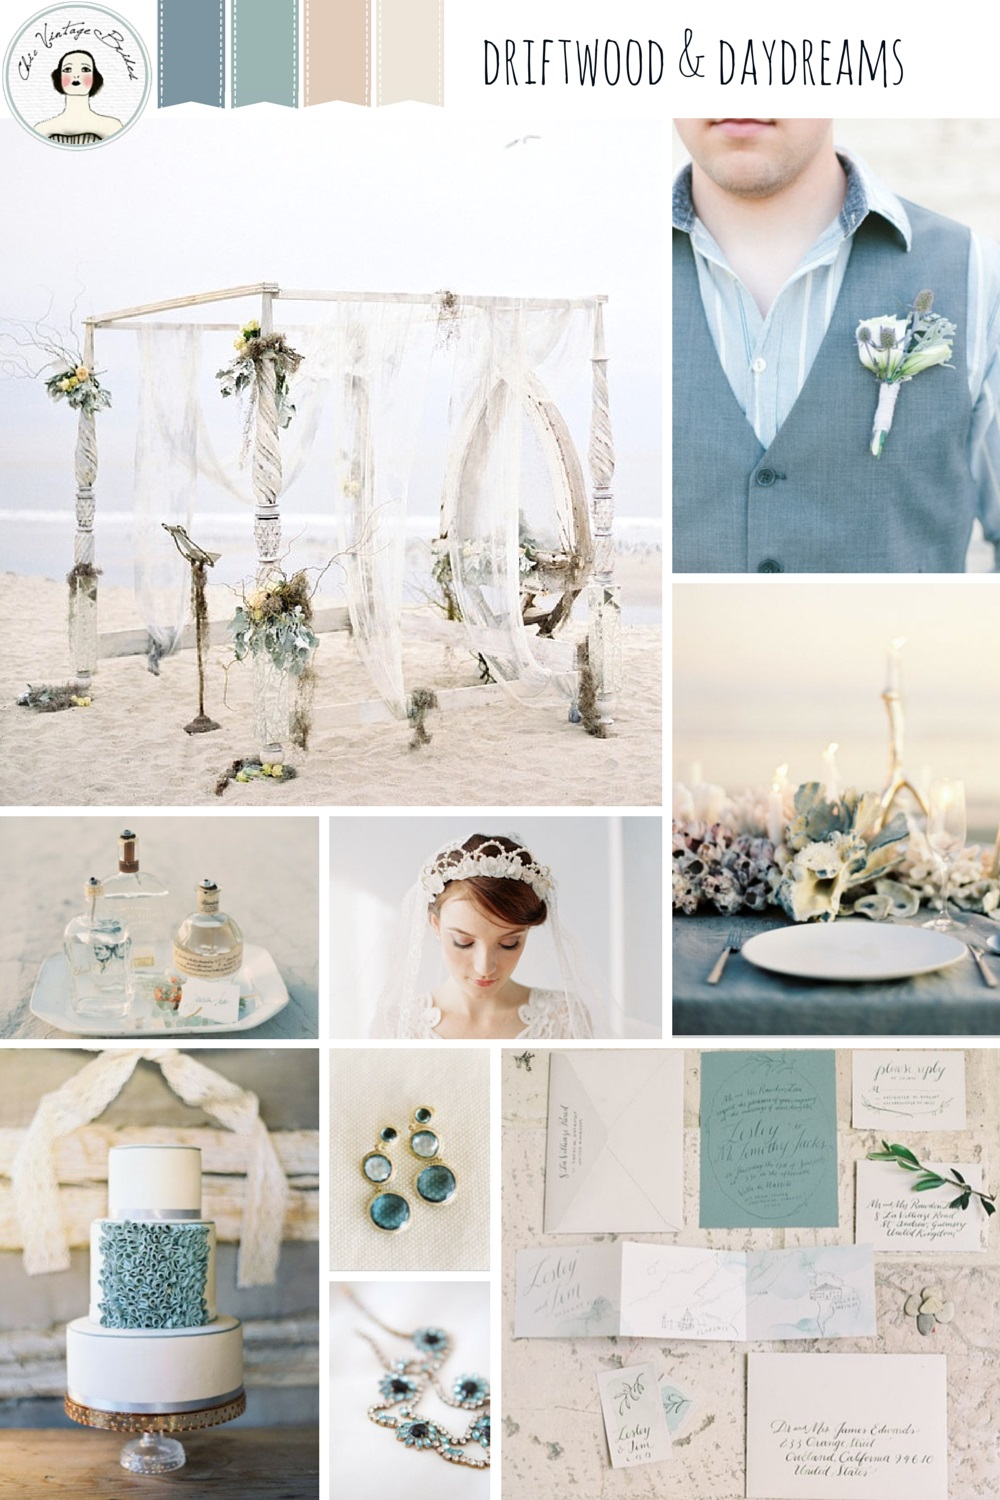 Driftwood & Daydreams - Beach Wedding Inspiration in Shades of Dusky Blues and Greens